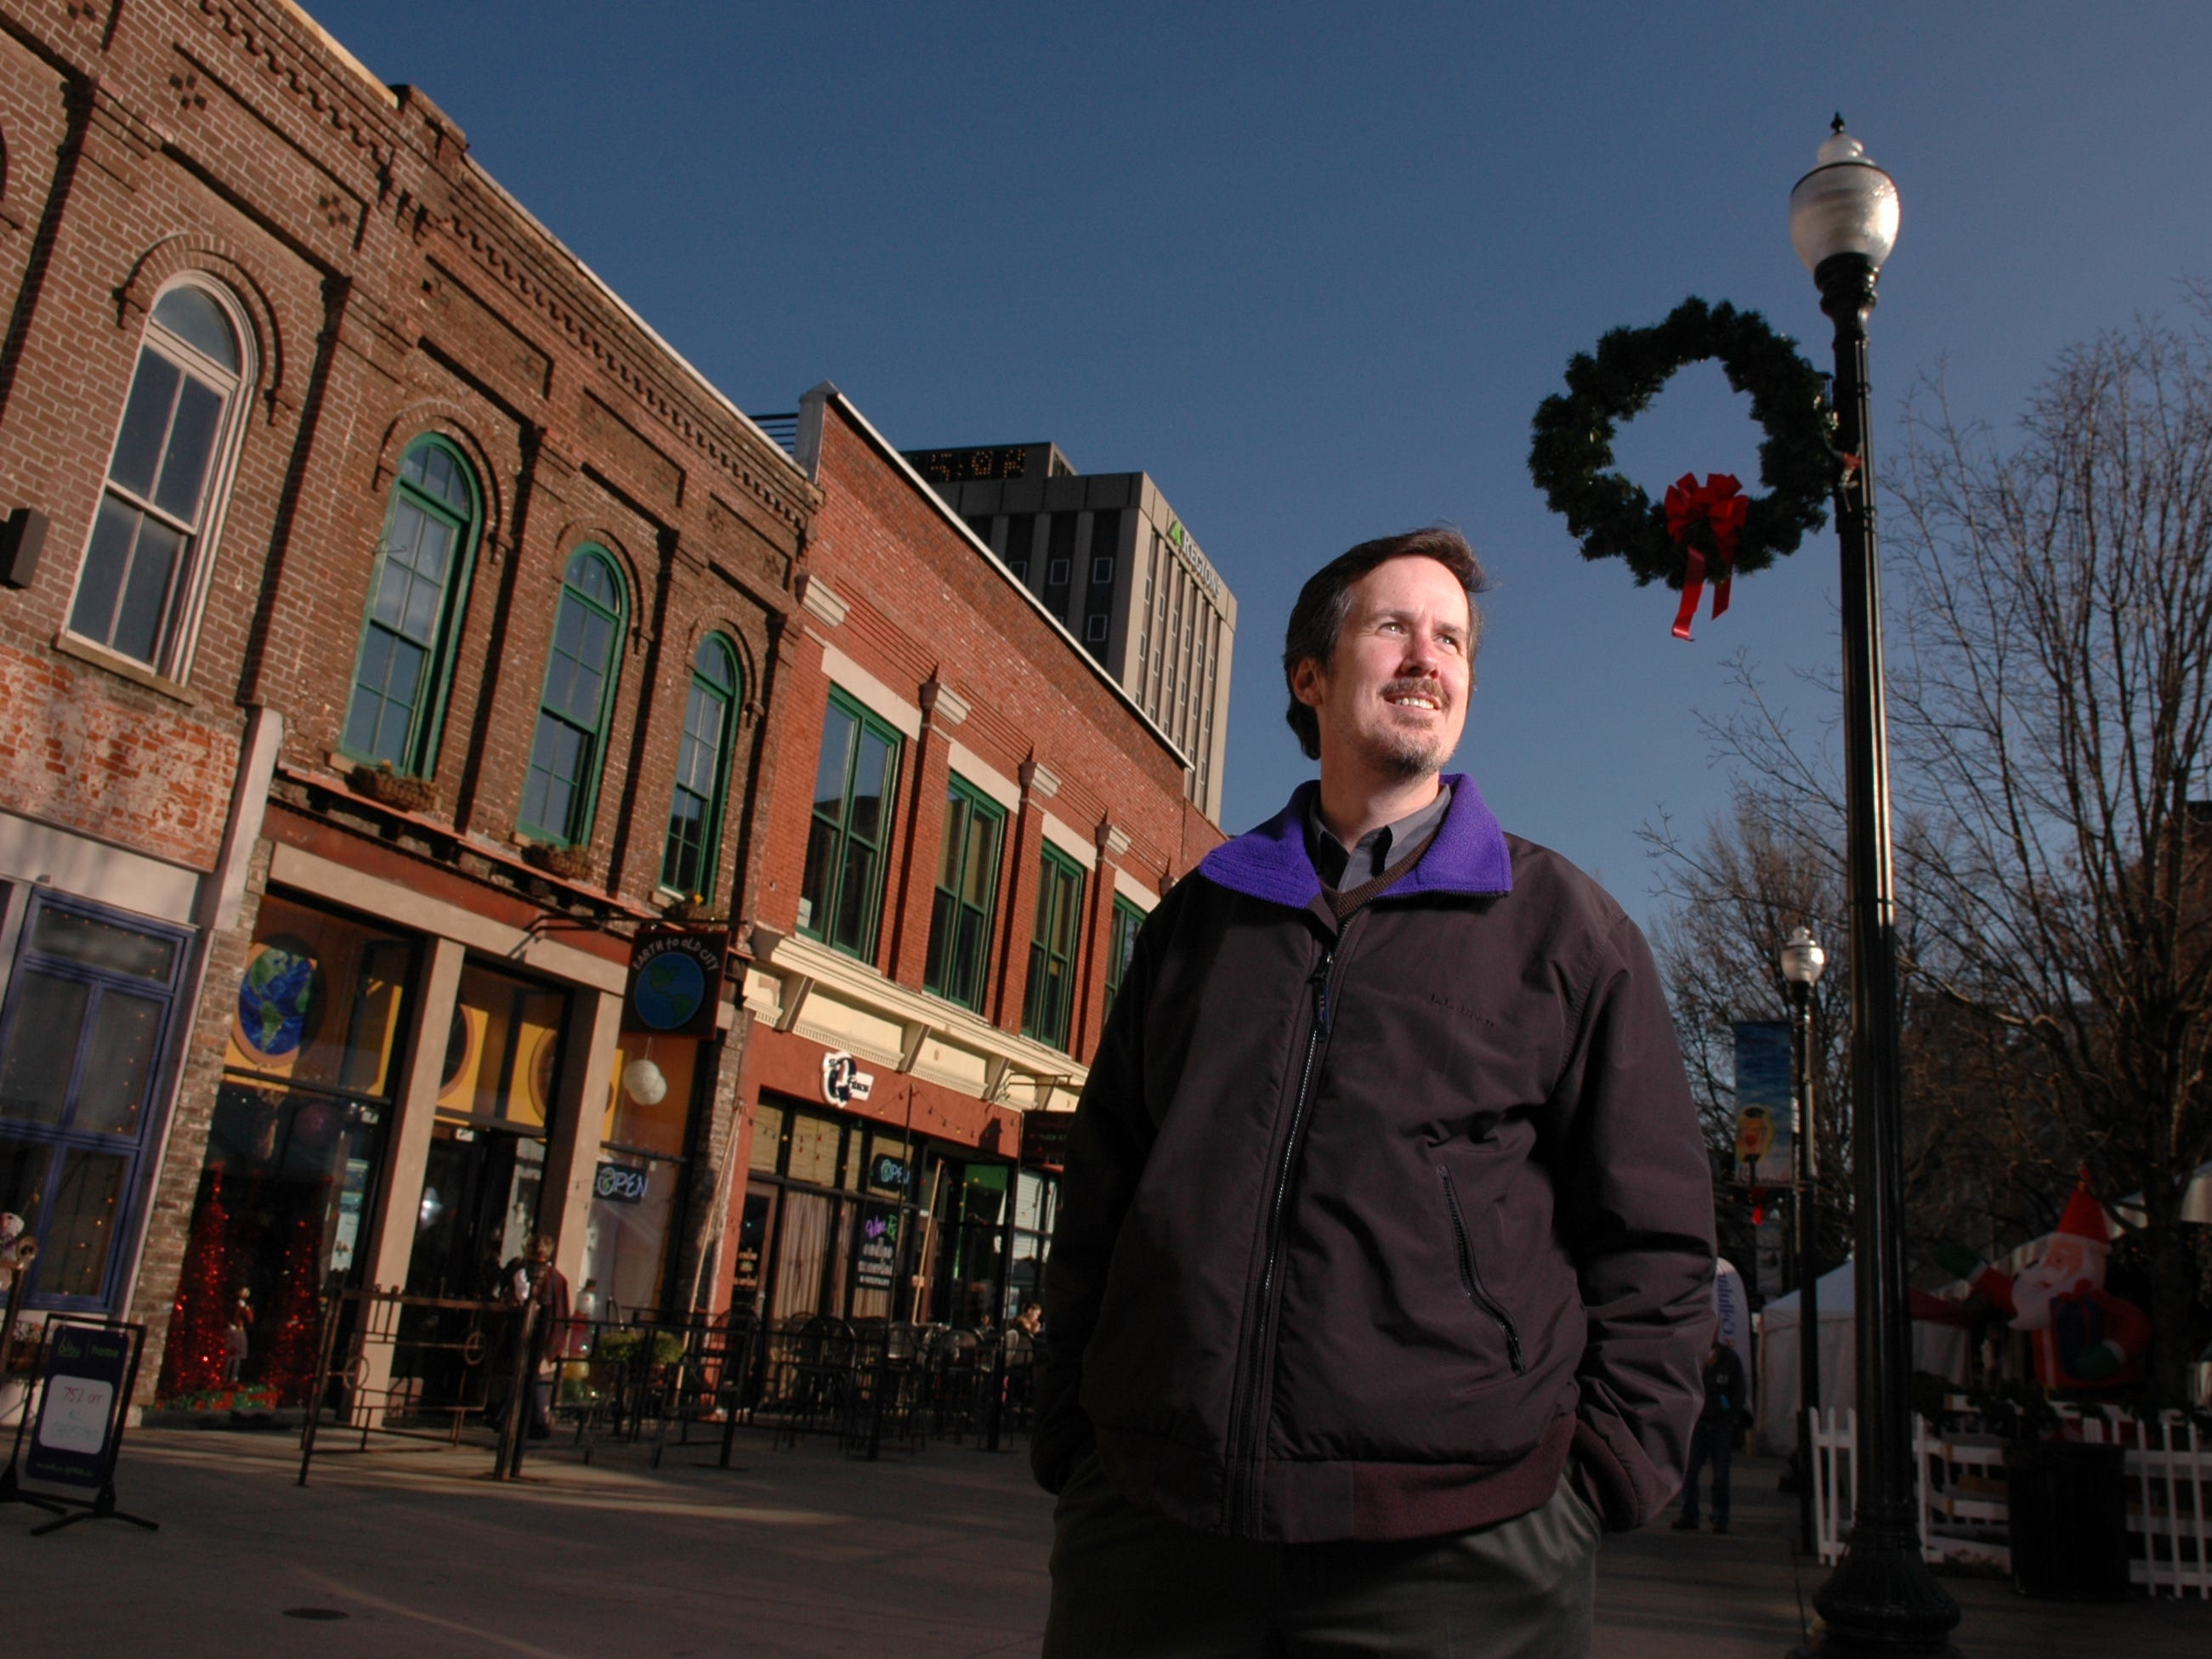 John Craig is the Market Square District Association president and is planning a New Year's Eve celebration on Market Square that will include ice skating, a ball drop, and fireworks. He is pictured here at Market Square on a sunny Thursday afternoon.